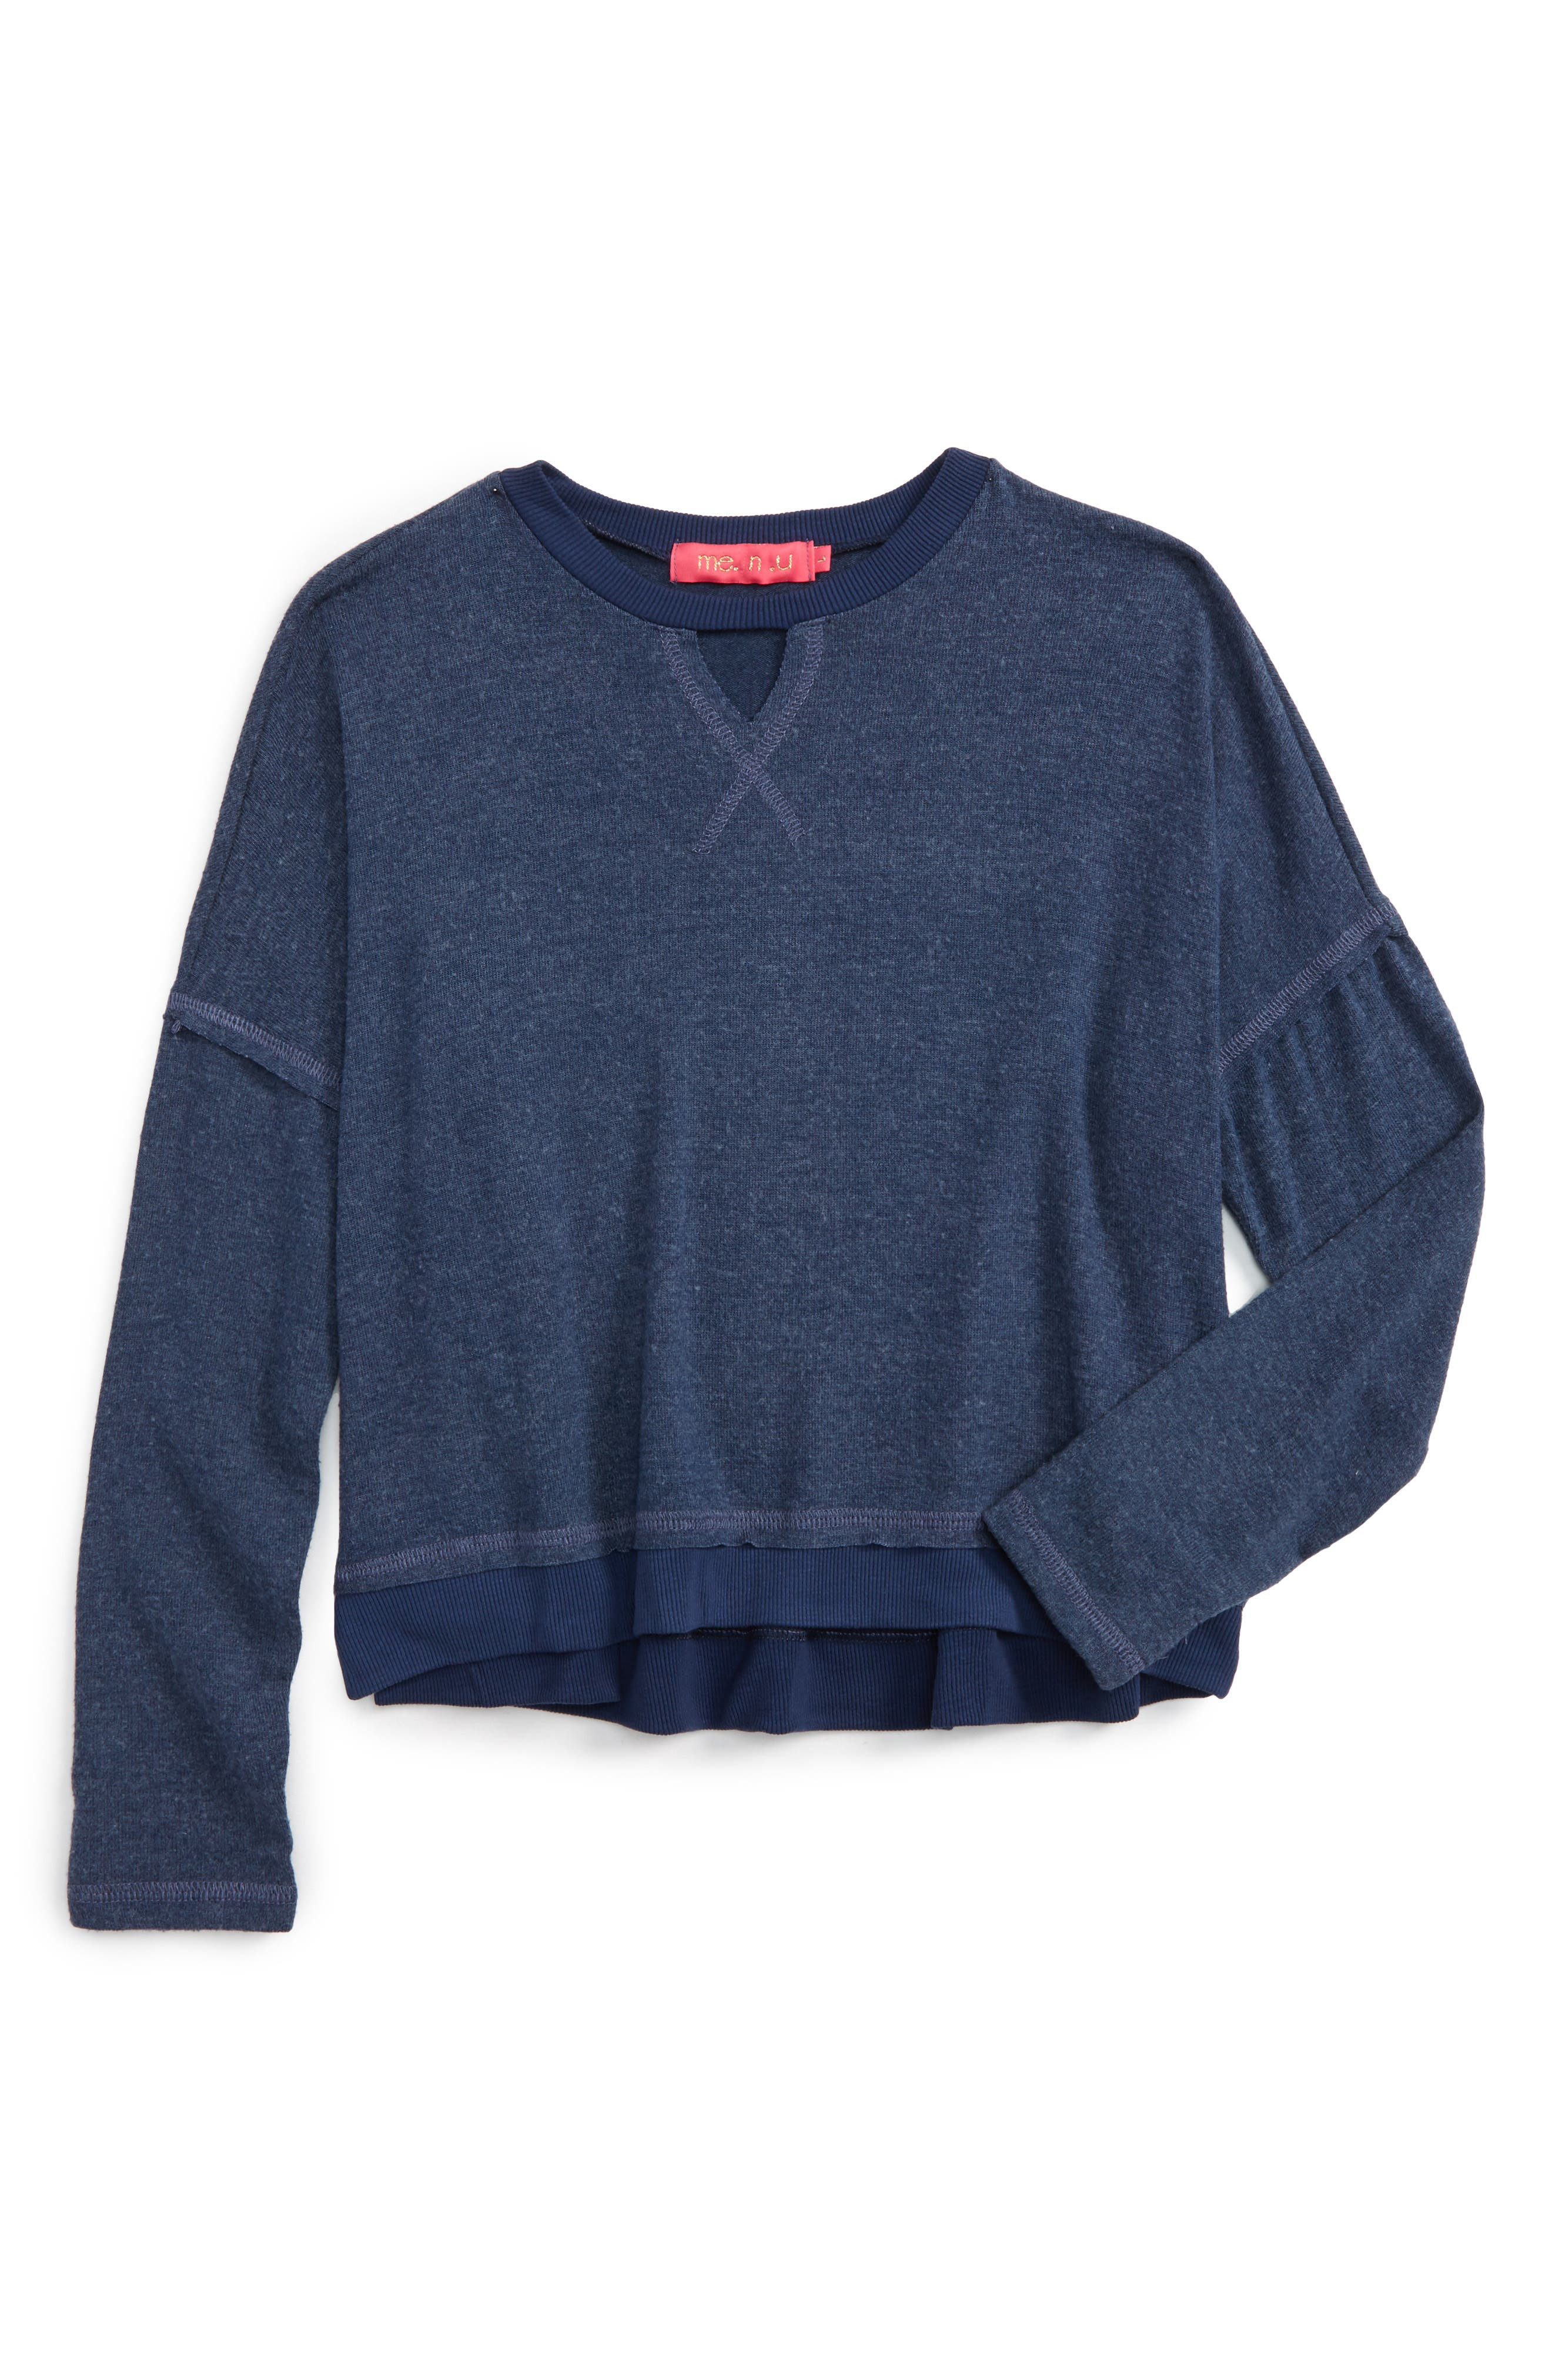 Alternate Image 1 Selected - me.n.u Gigi Cutout Sweatshirt (Big Girls)